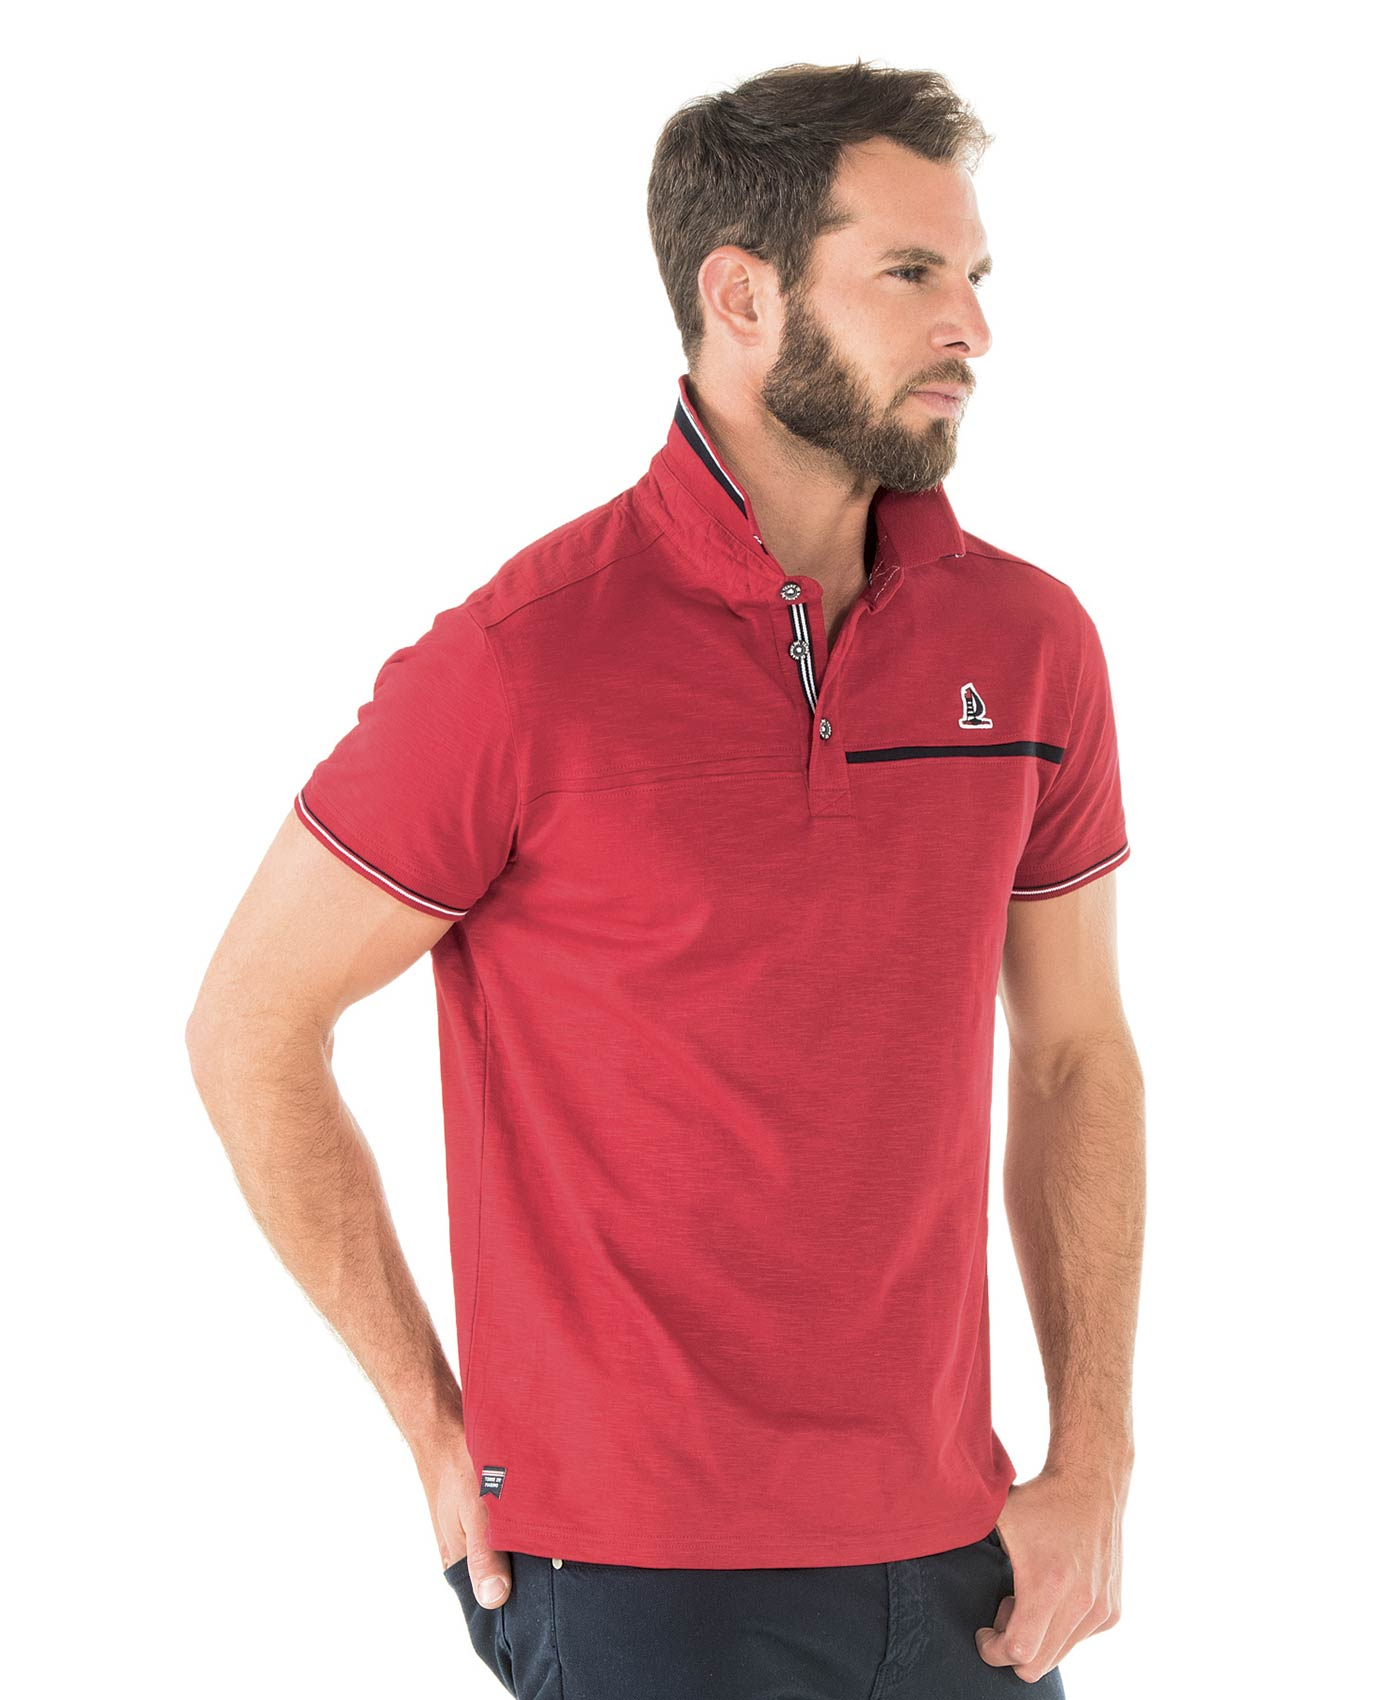 Polo manches courtes homme rouge - Mode marine Homme